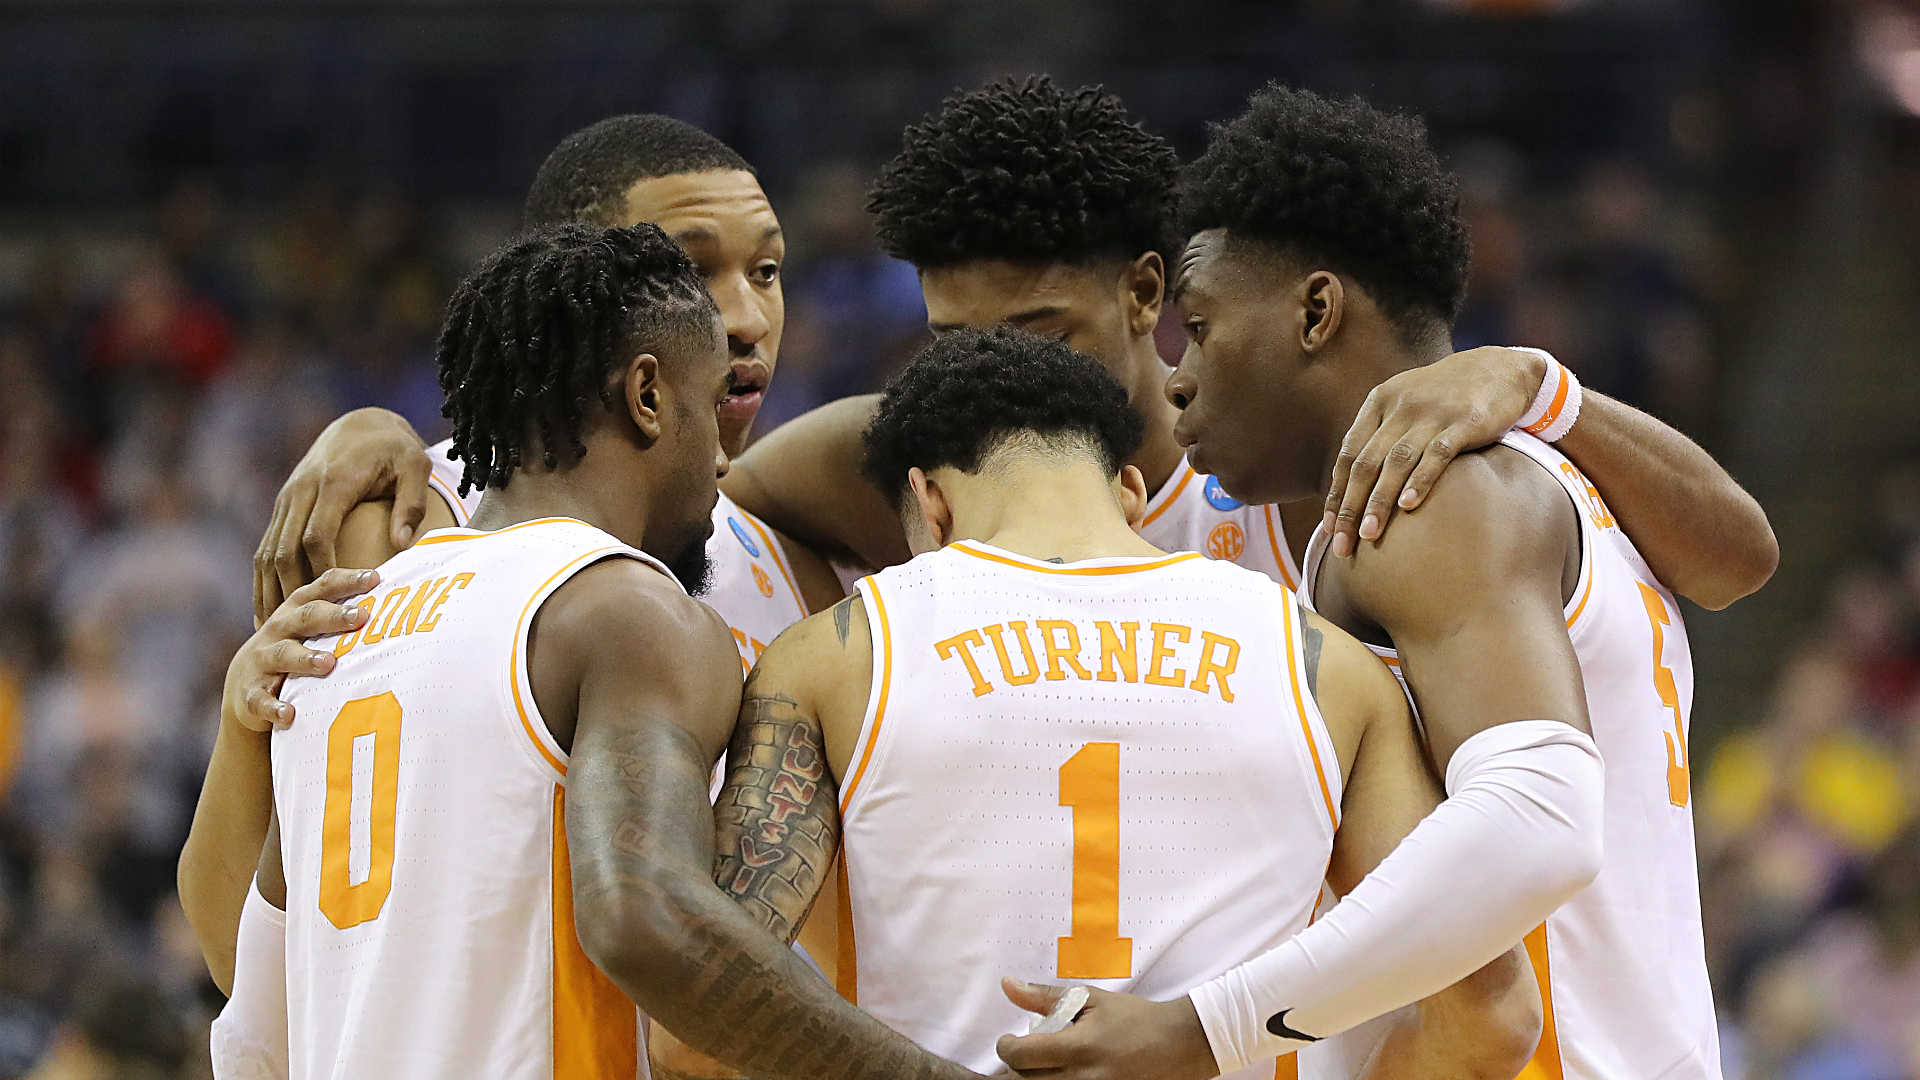 March Madness 2019: Tennessee Has Success, But Didn't